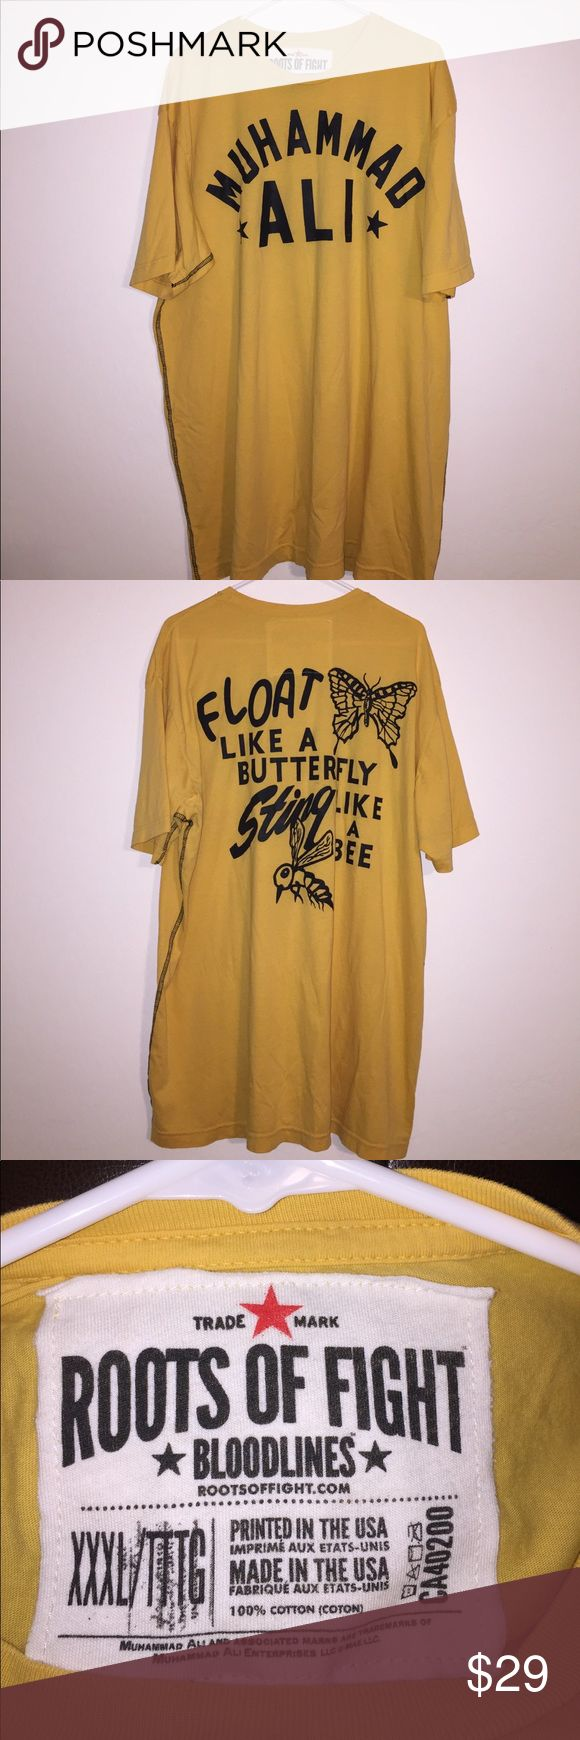 Roots of fight shirt xxxL Brand new Float like a butterfly sting like a bee shirt. Brand new XXXL ROOTS OF Fight Roots of fight Shirts Tees - Short Sleeve